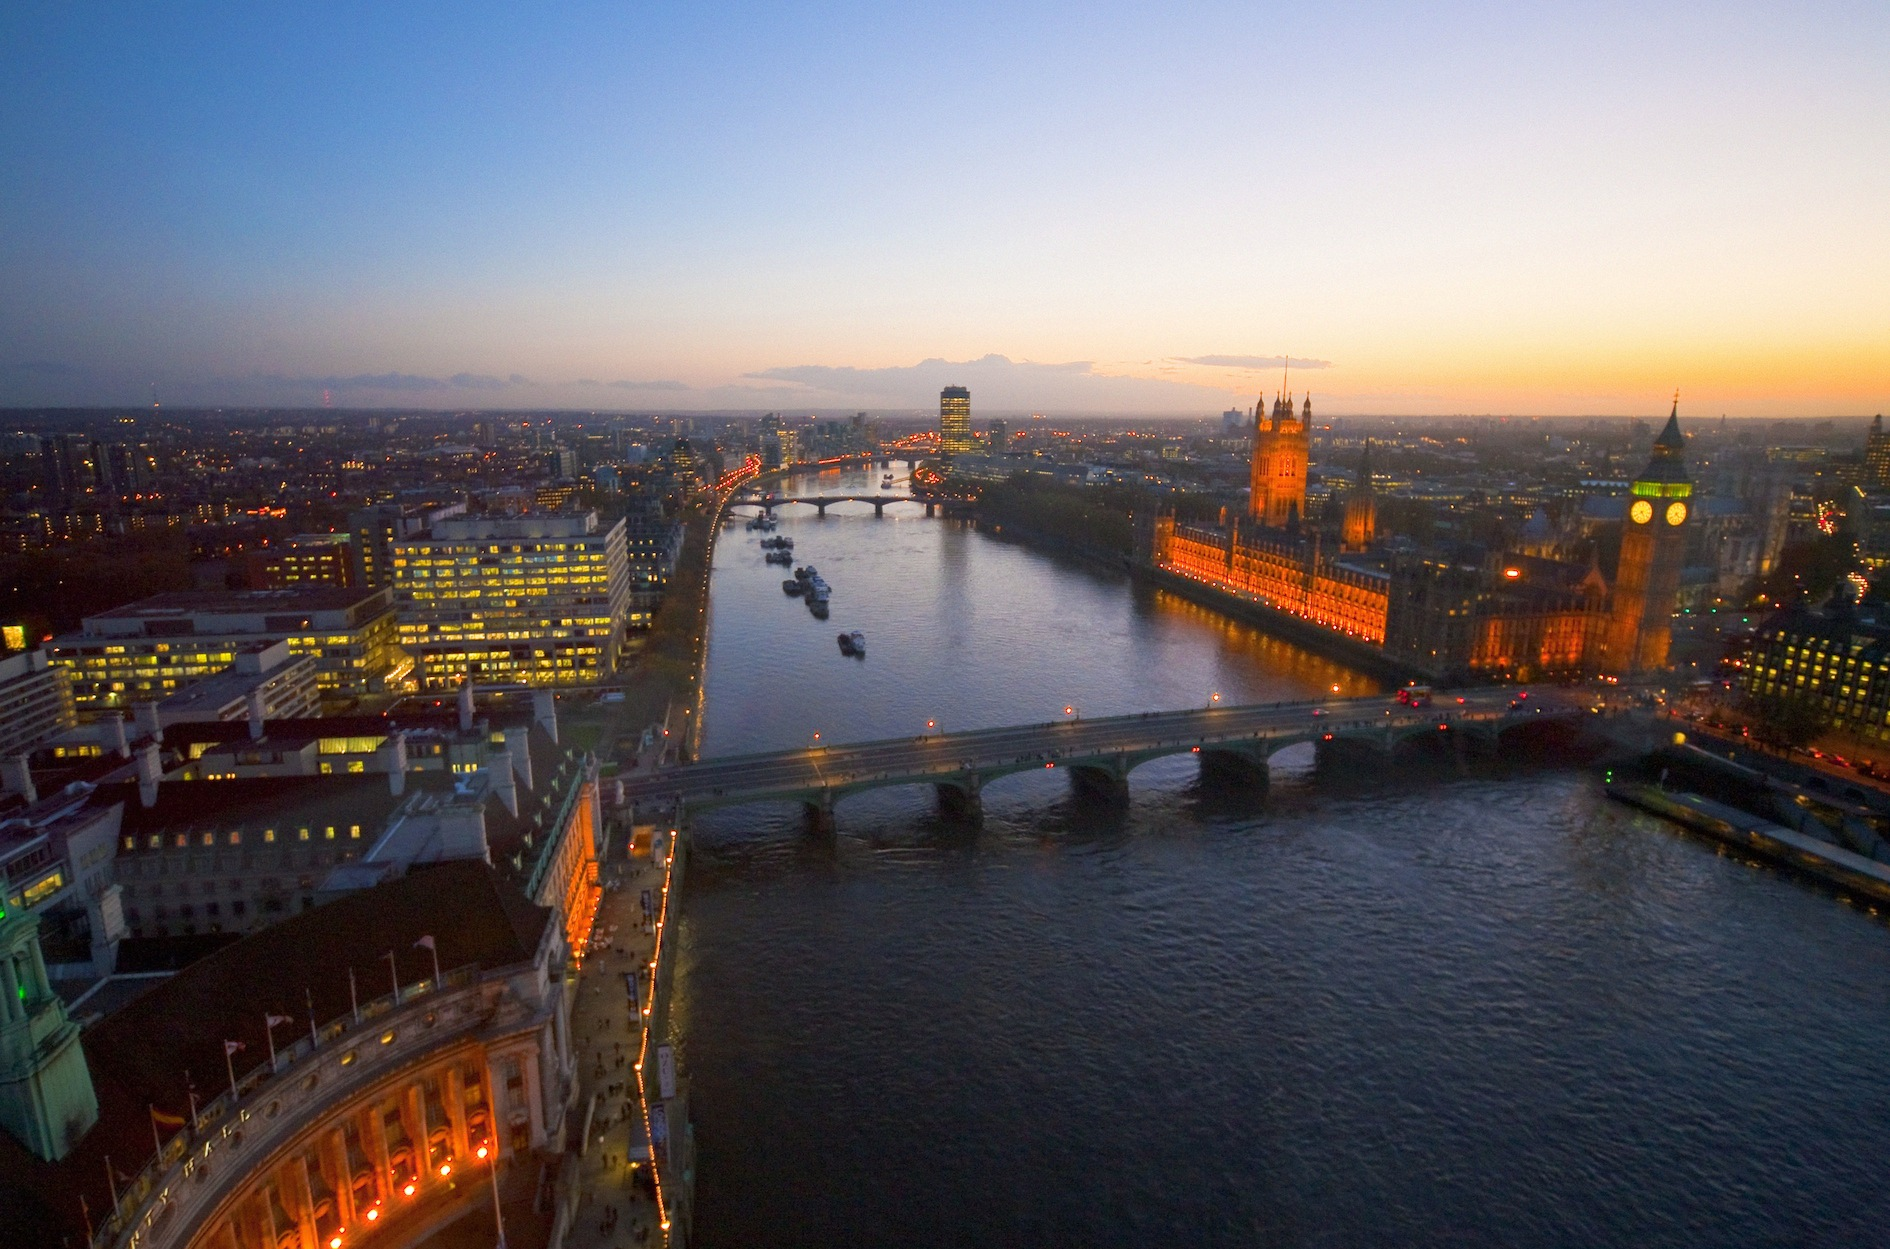 Aerial view of the River Thames, Houses of Parliament and Westminster Bridge at dusk